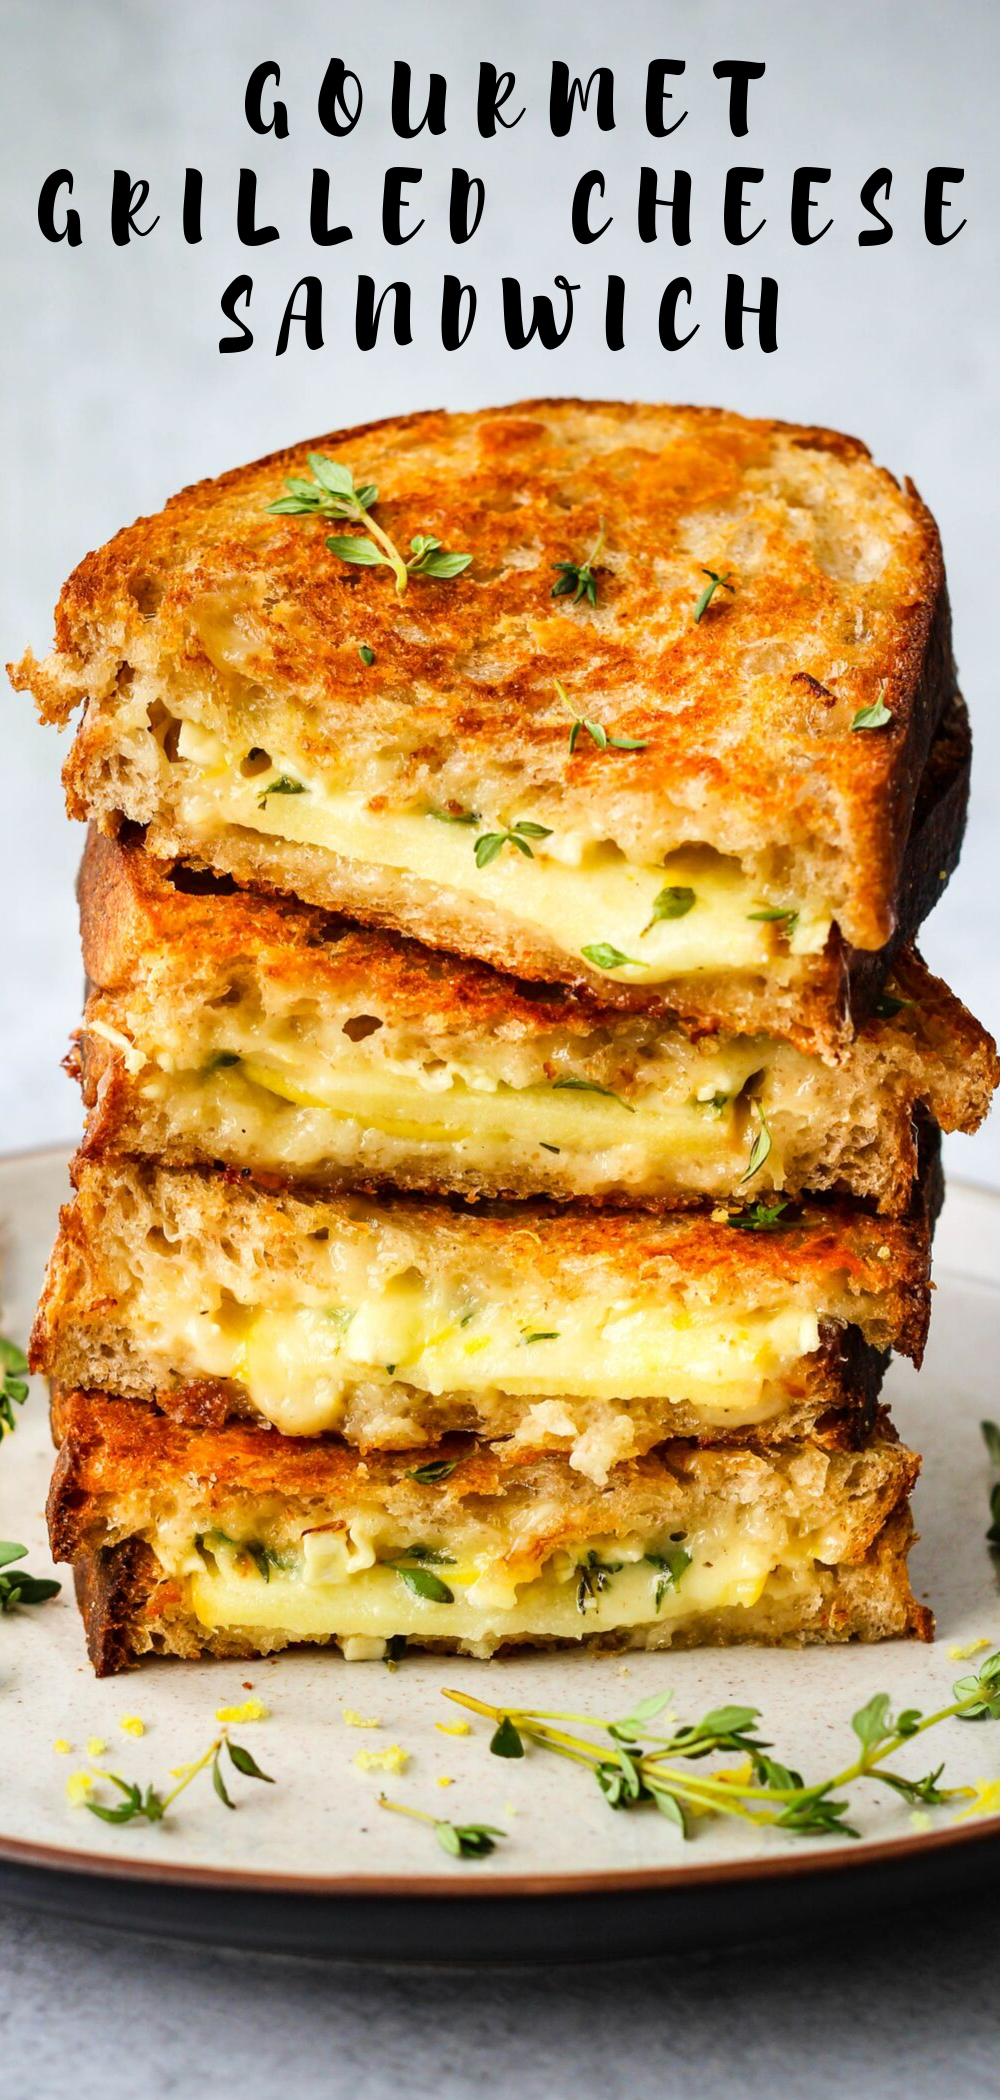 The Best Gourmet Grilled Cheese Sandwich Walder Wellness Dietitian Recipe Gourmet Grilled Cheese Sandwich Gourmet Grilled Cheese Gourmet Grilling